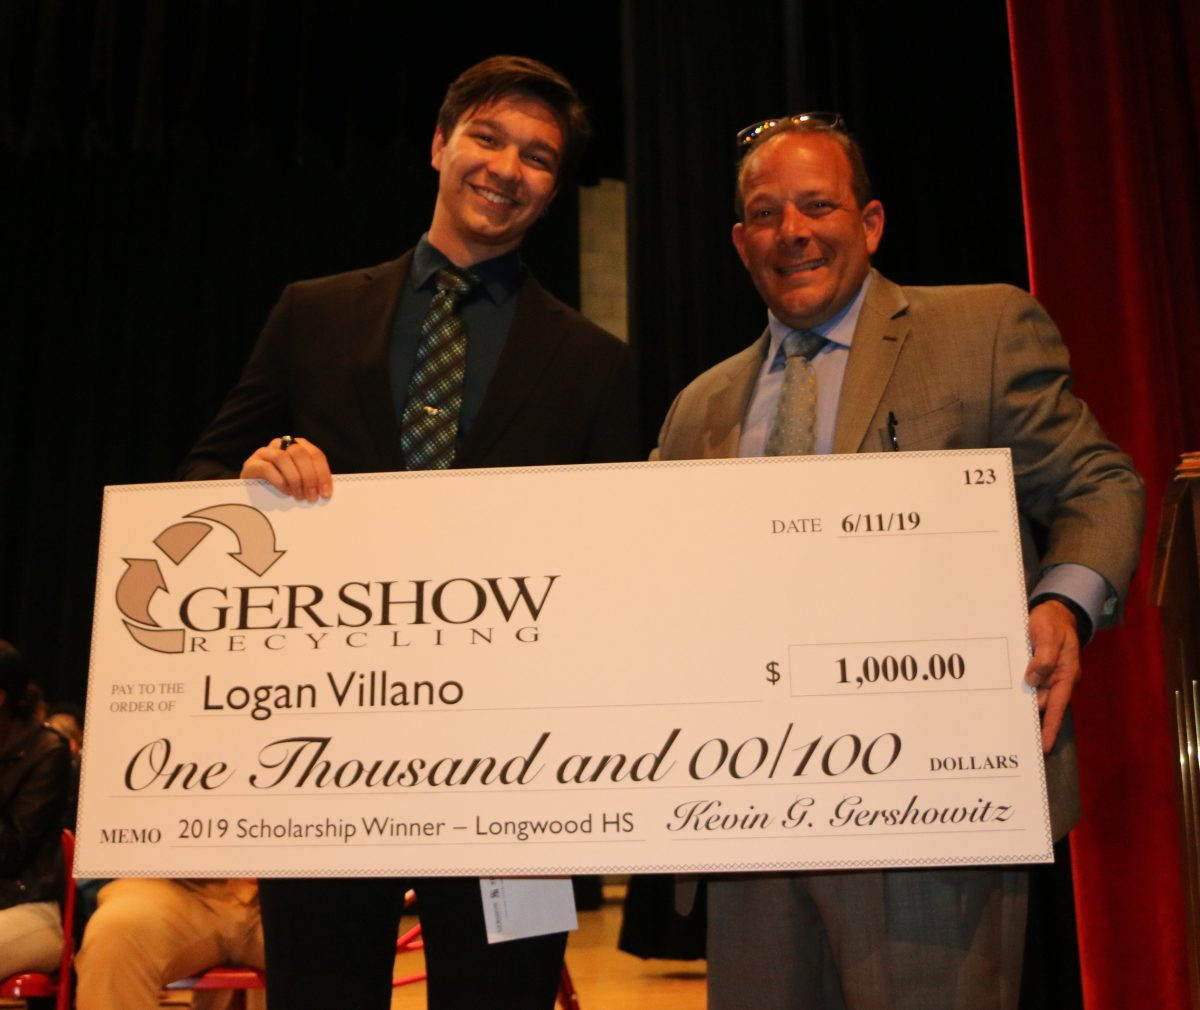 Gershow Recycling Grants Environmental Conservation Scholarship to Longwood High School Graduating Senior Logan Villano